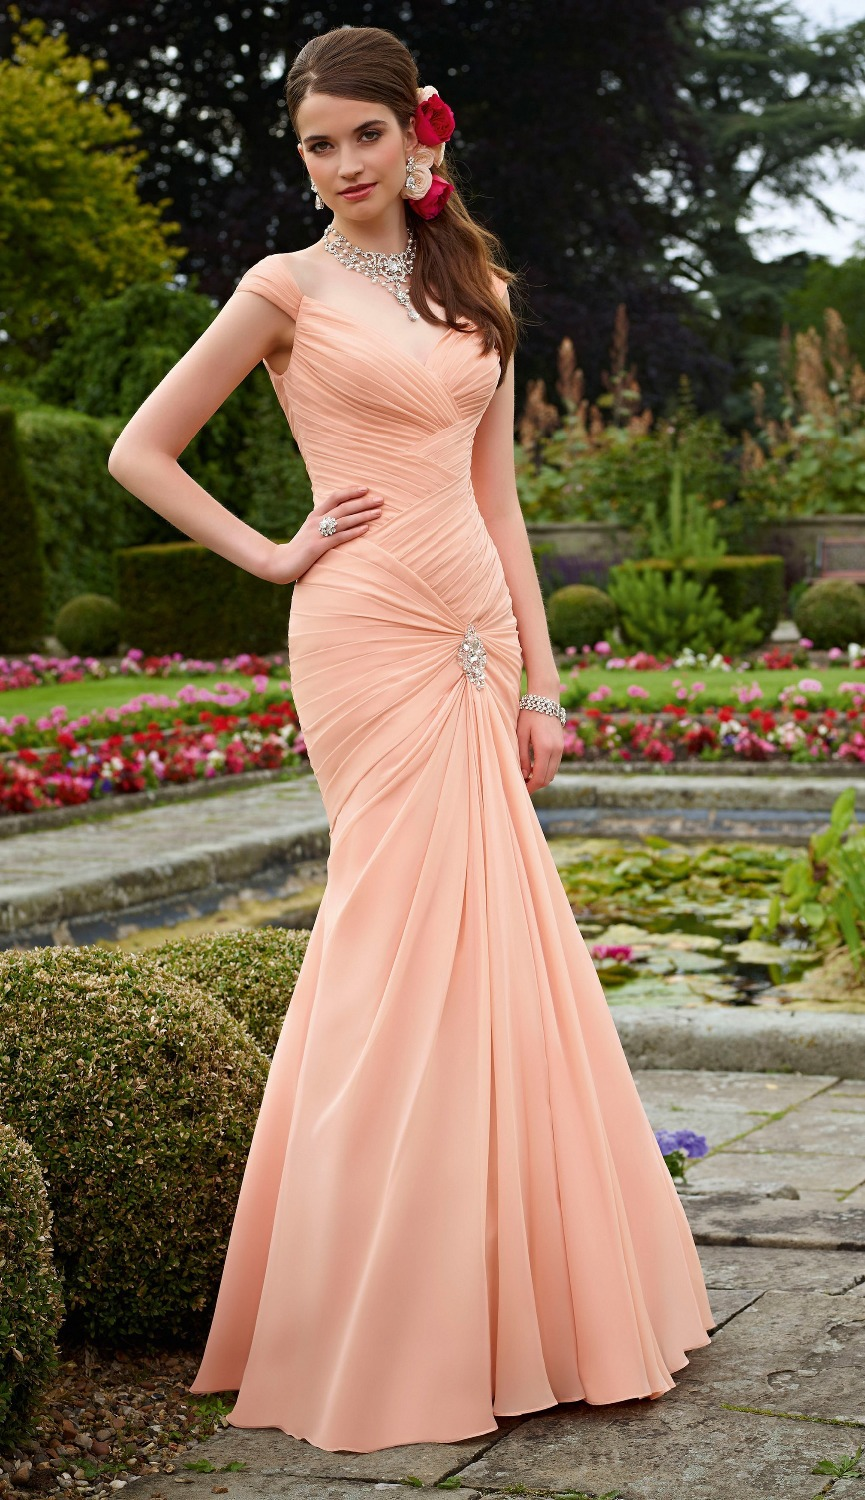 high low dresses for wedding guest coral dress for wedding High low perfect dresses for wedding guest